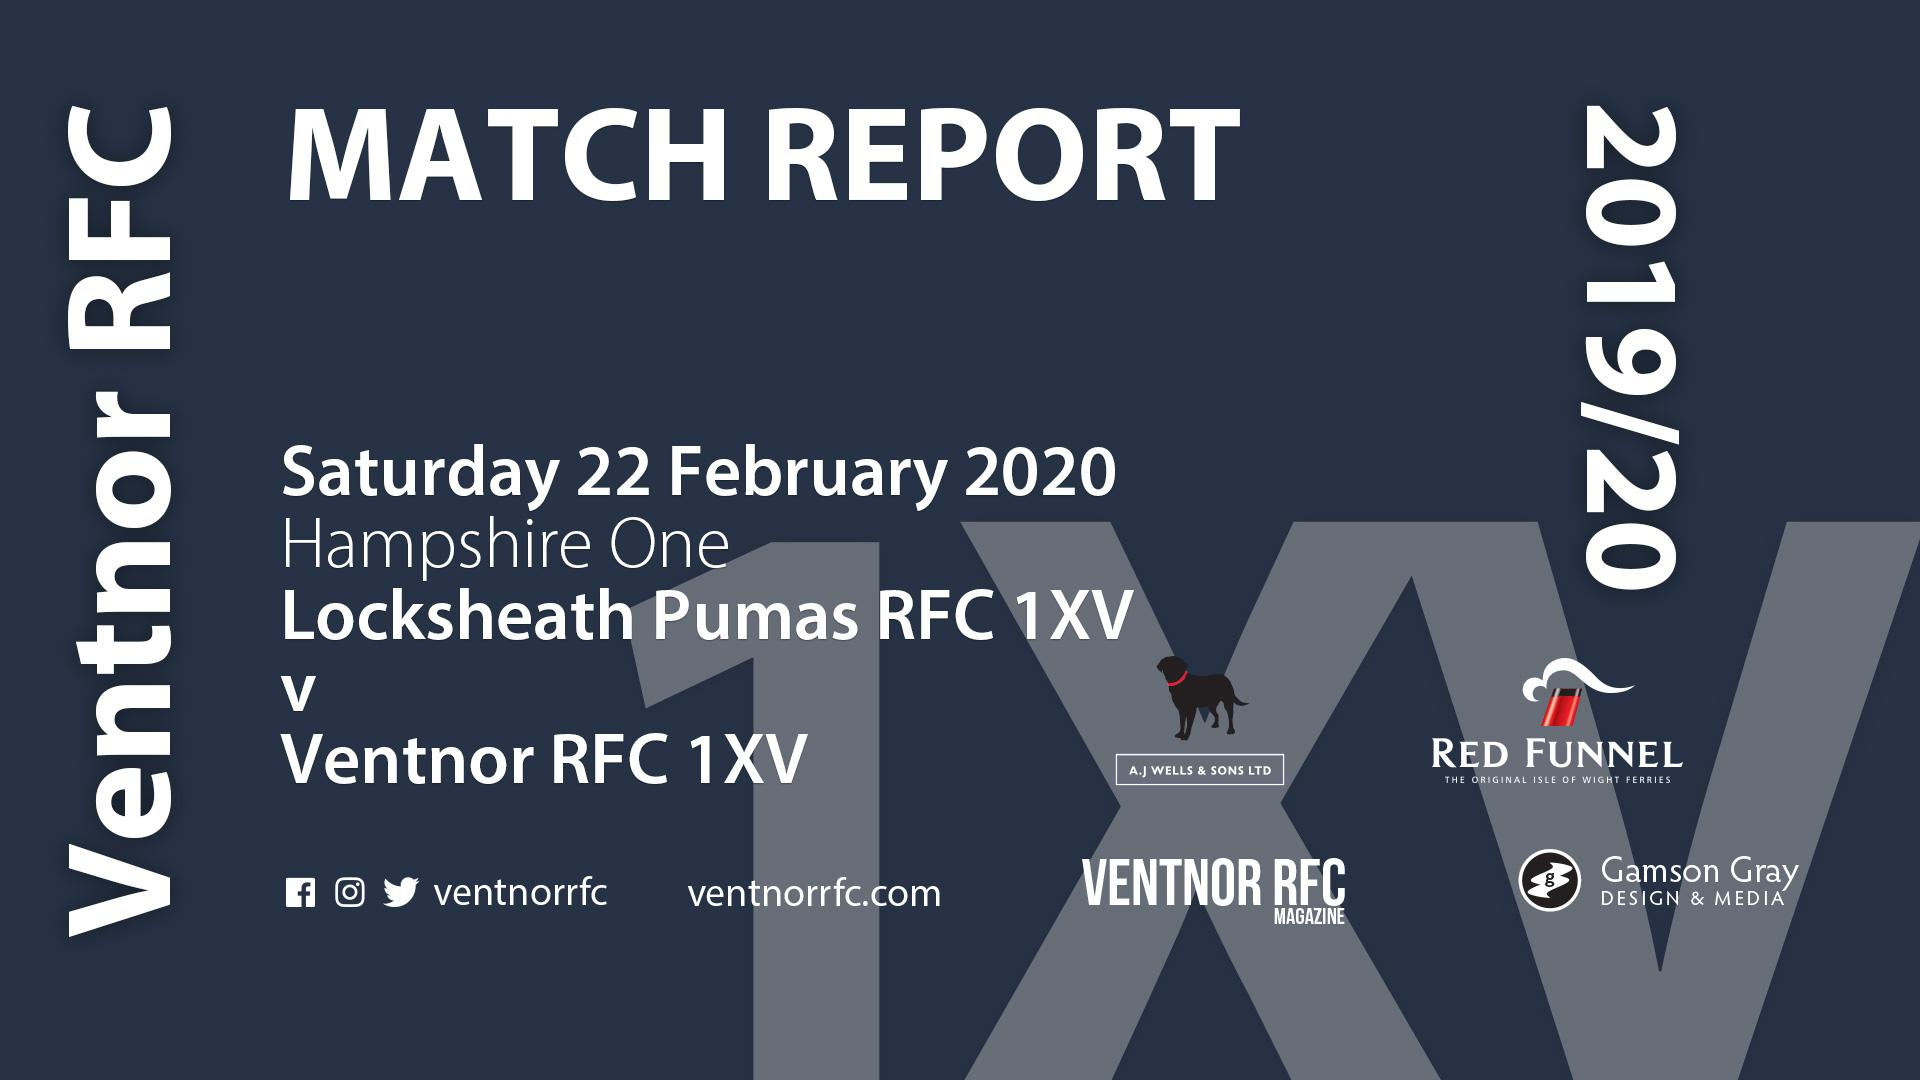 Locksheath-Pumas-RFC-1XV-22-14-Ventnor-RFC-1XV,-22-February-2020